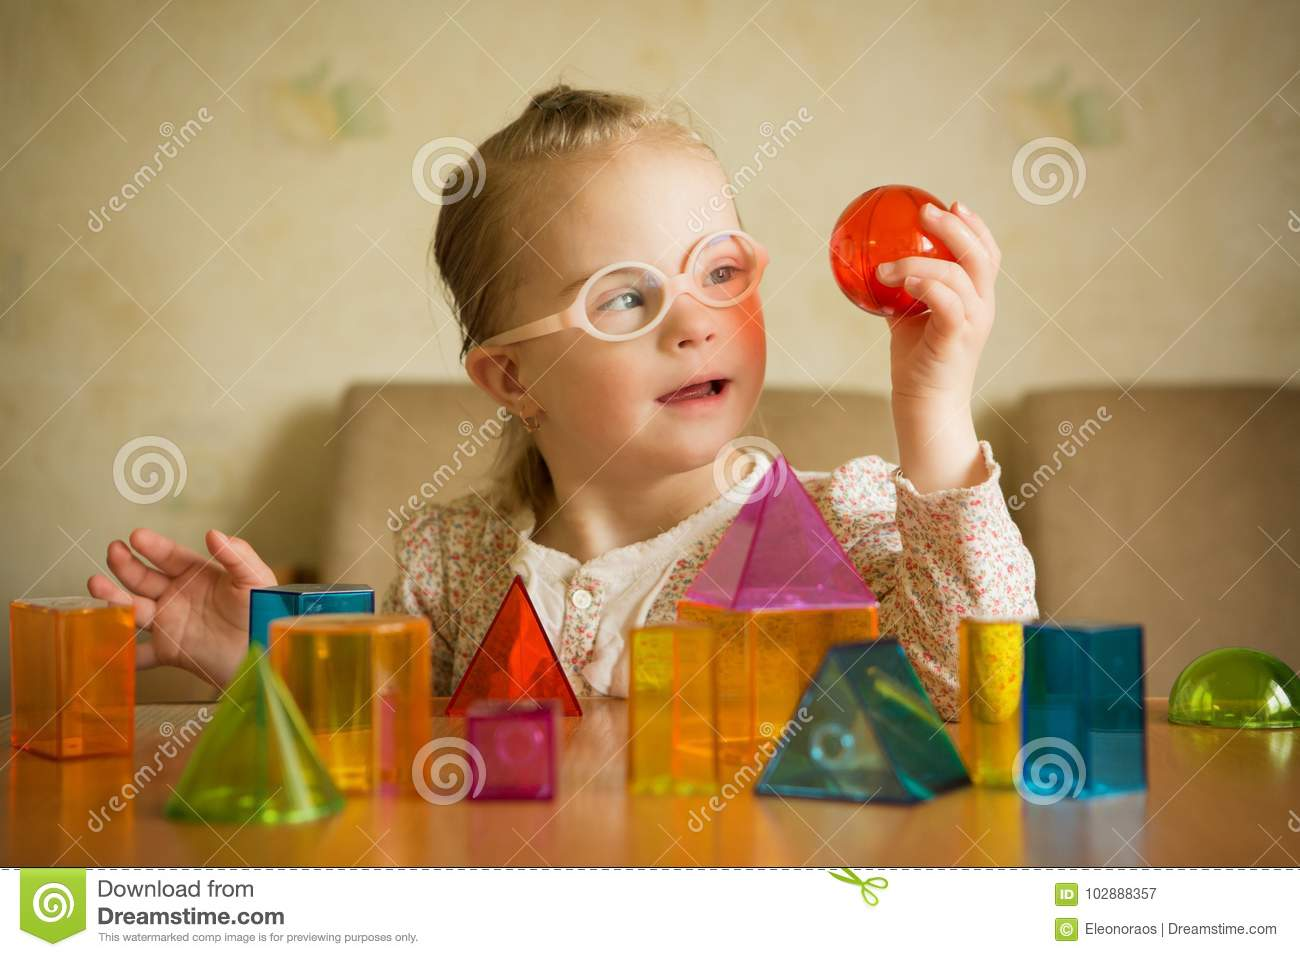 Girl with Down syndrome playing with geometrical shapes